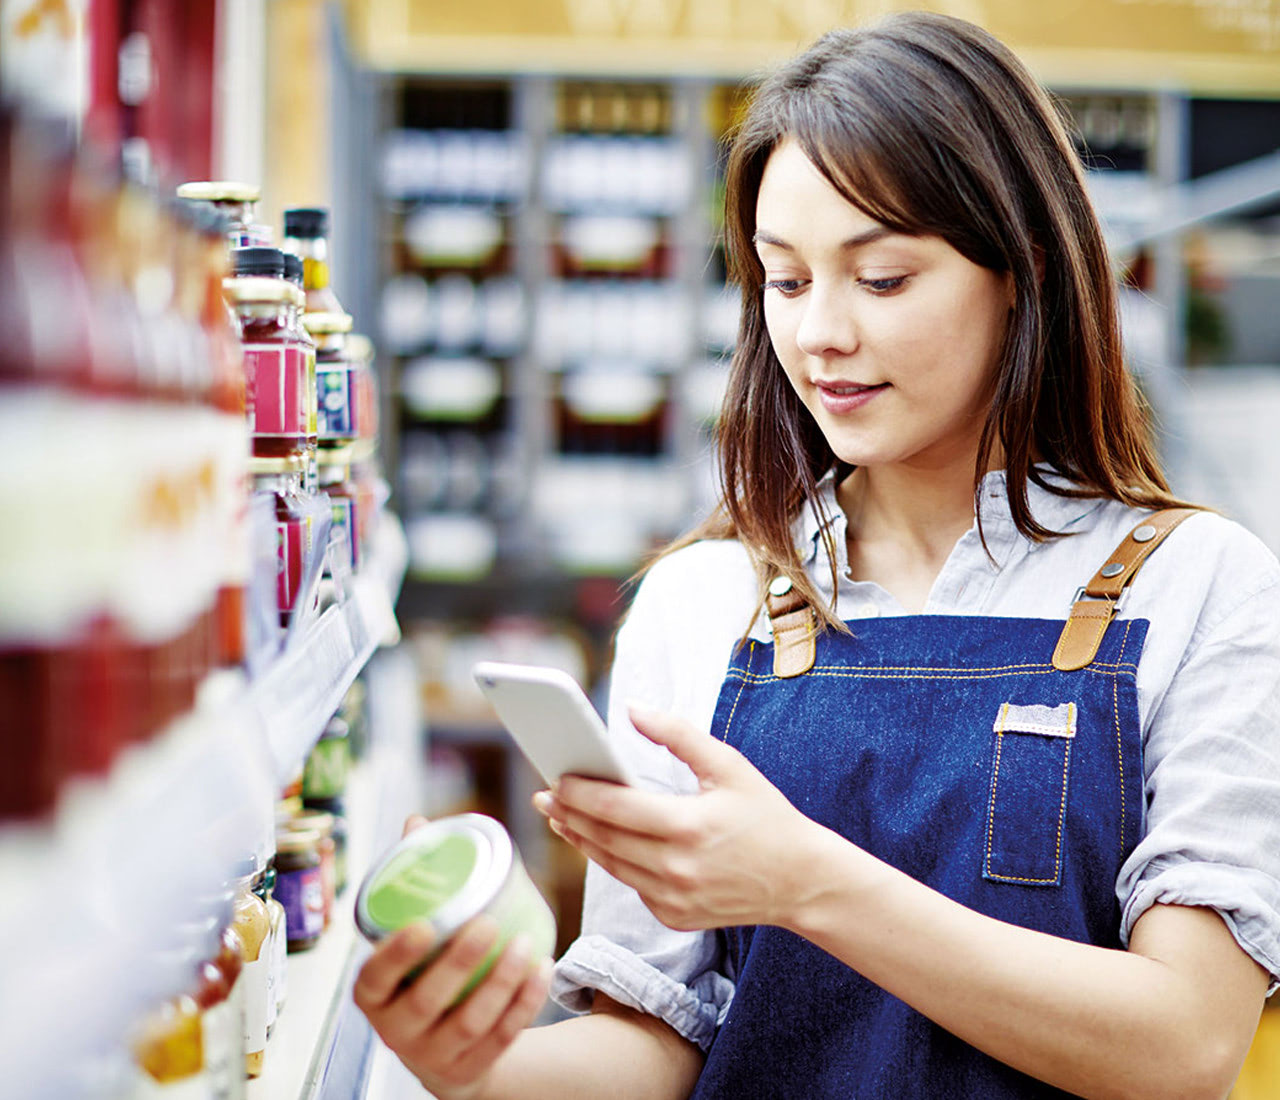 Optimize Retail Operations with Smartphone Scanning